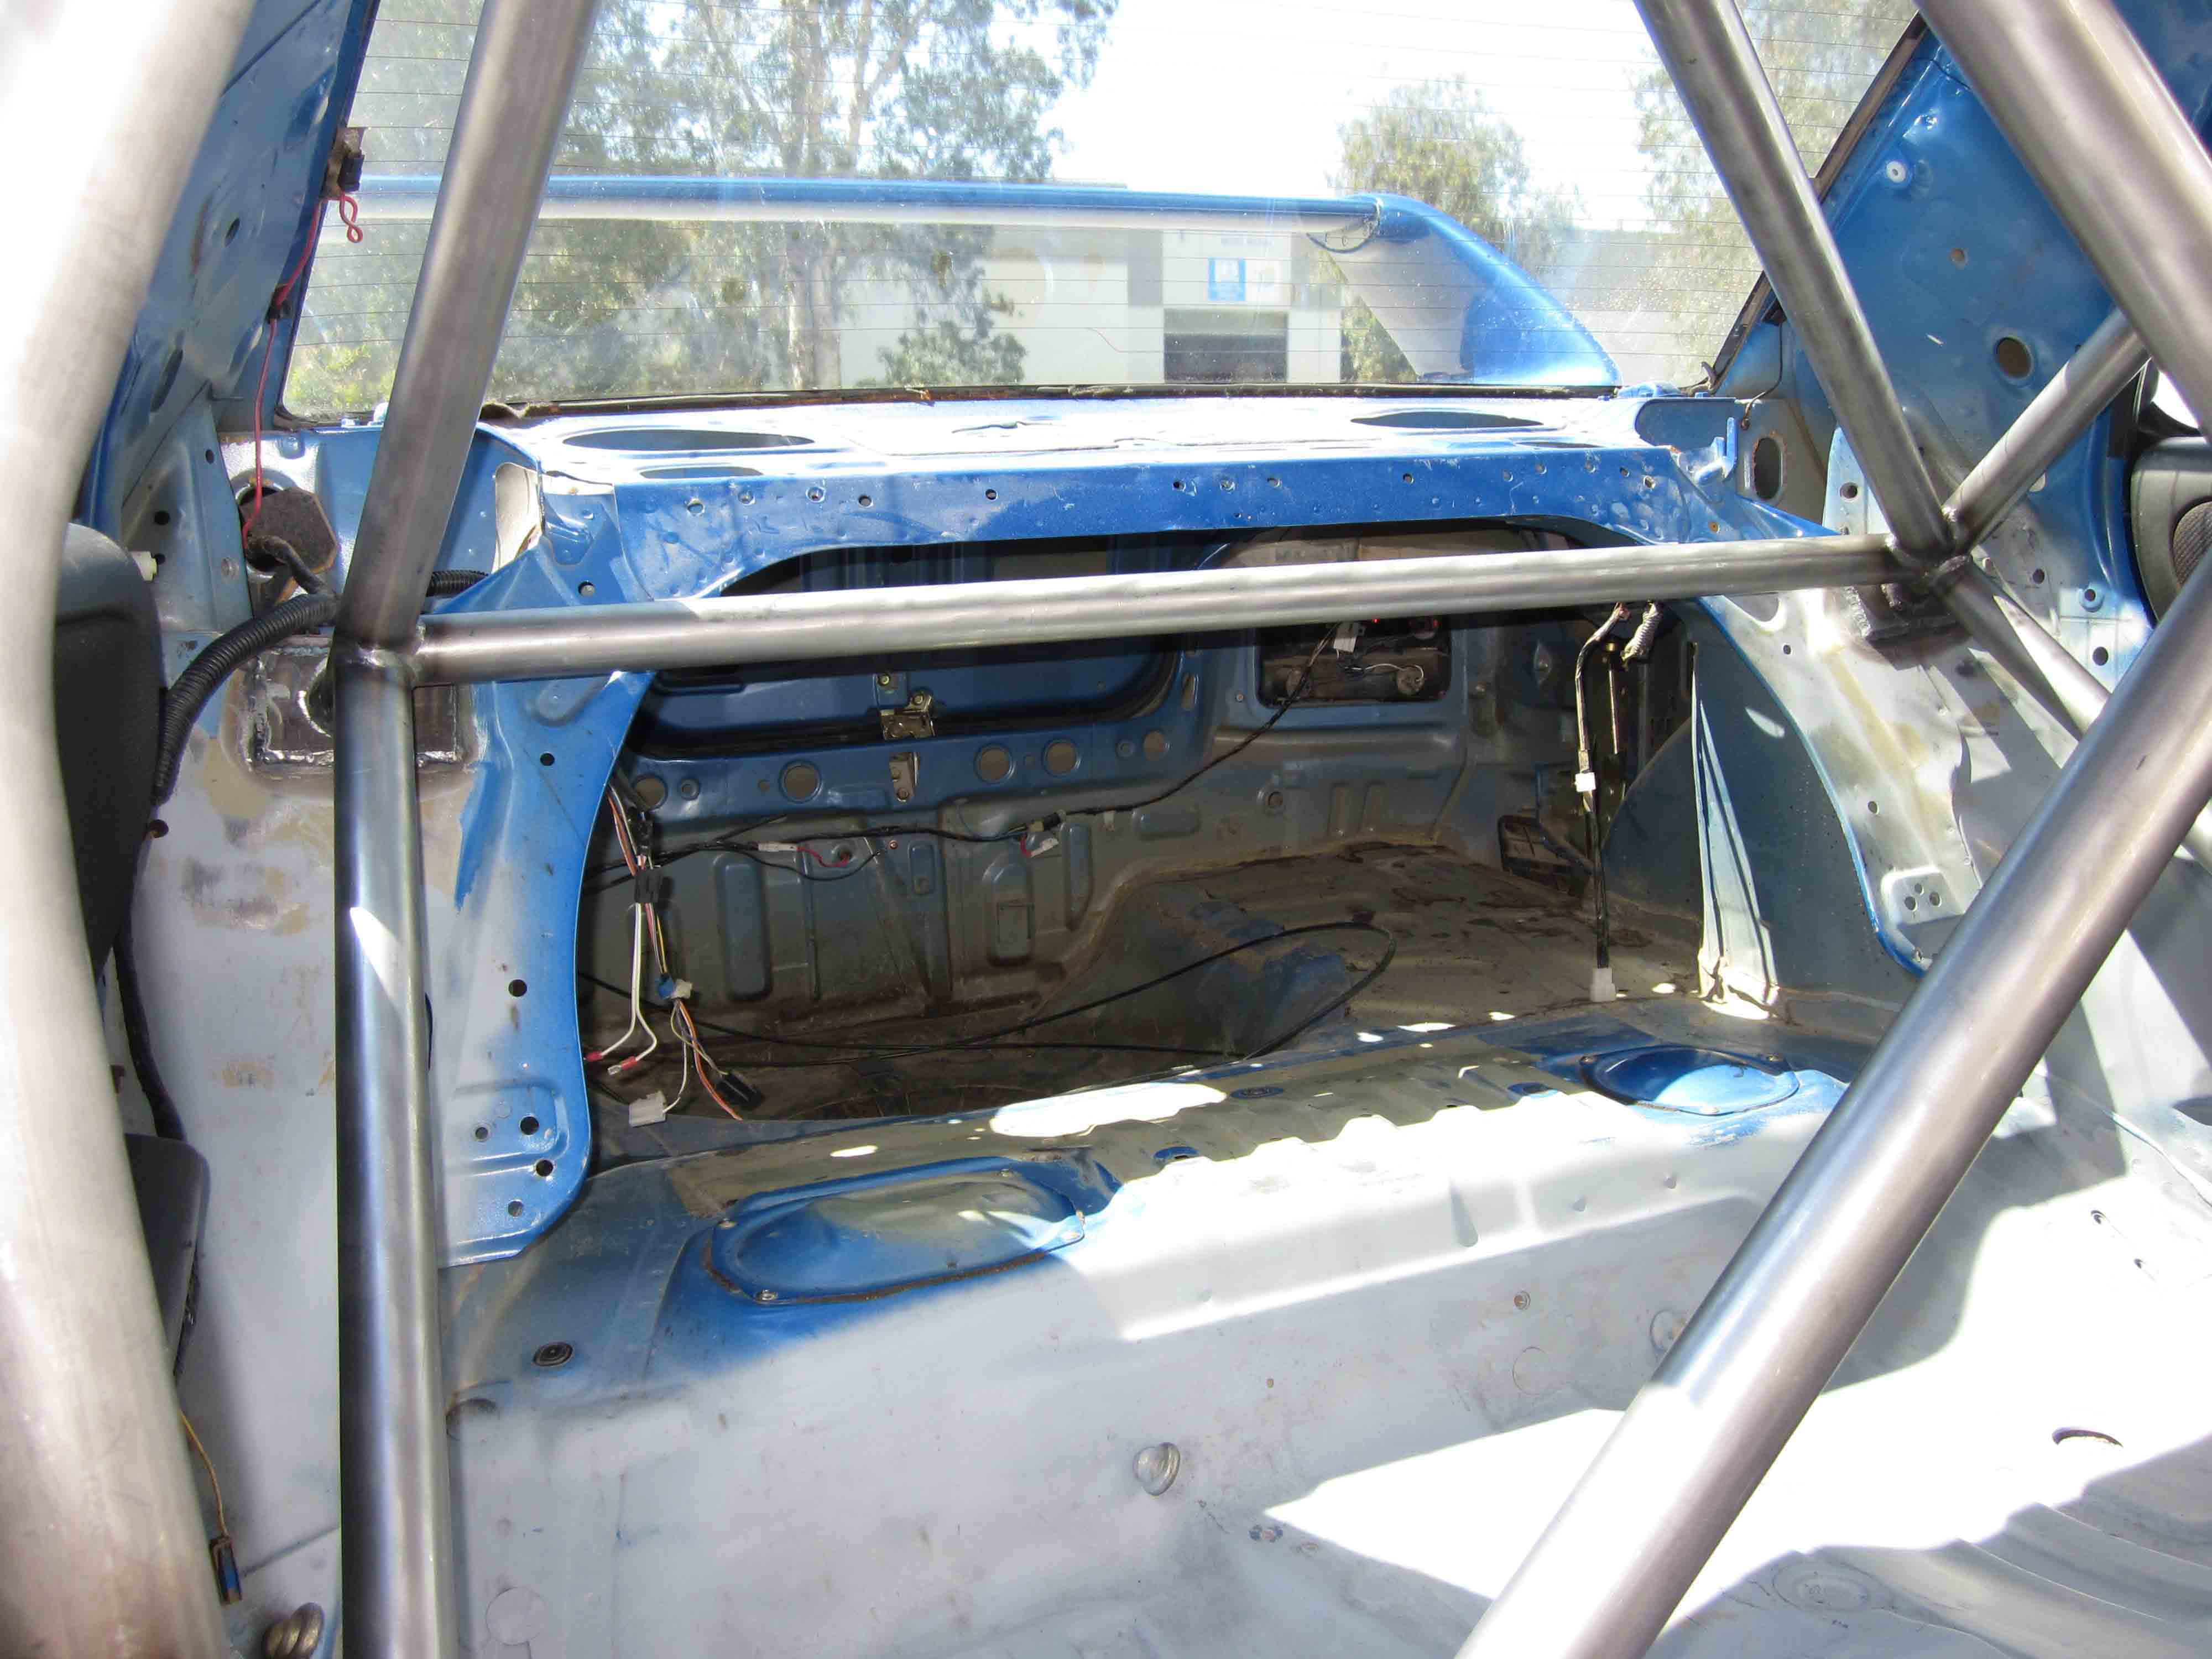 G) Subaru WRX GC8 - Full Cage (6 point) - Weld in - AGI ROLL CAGES